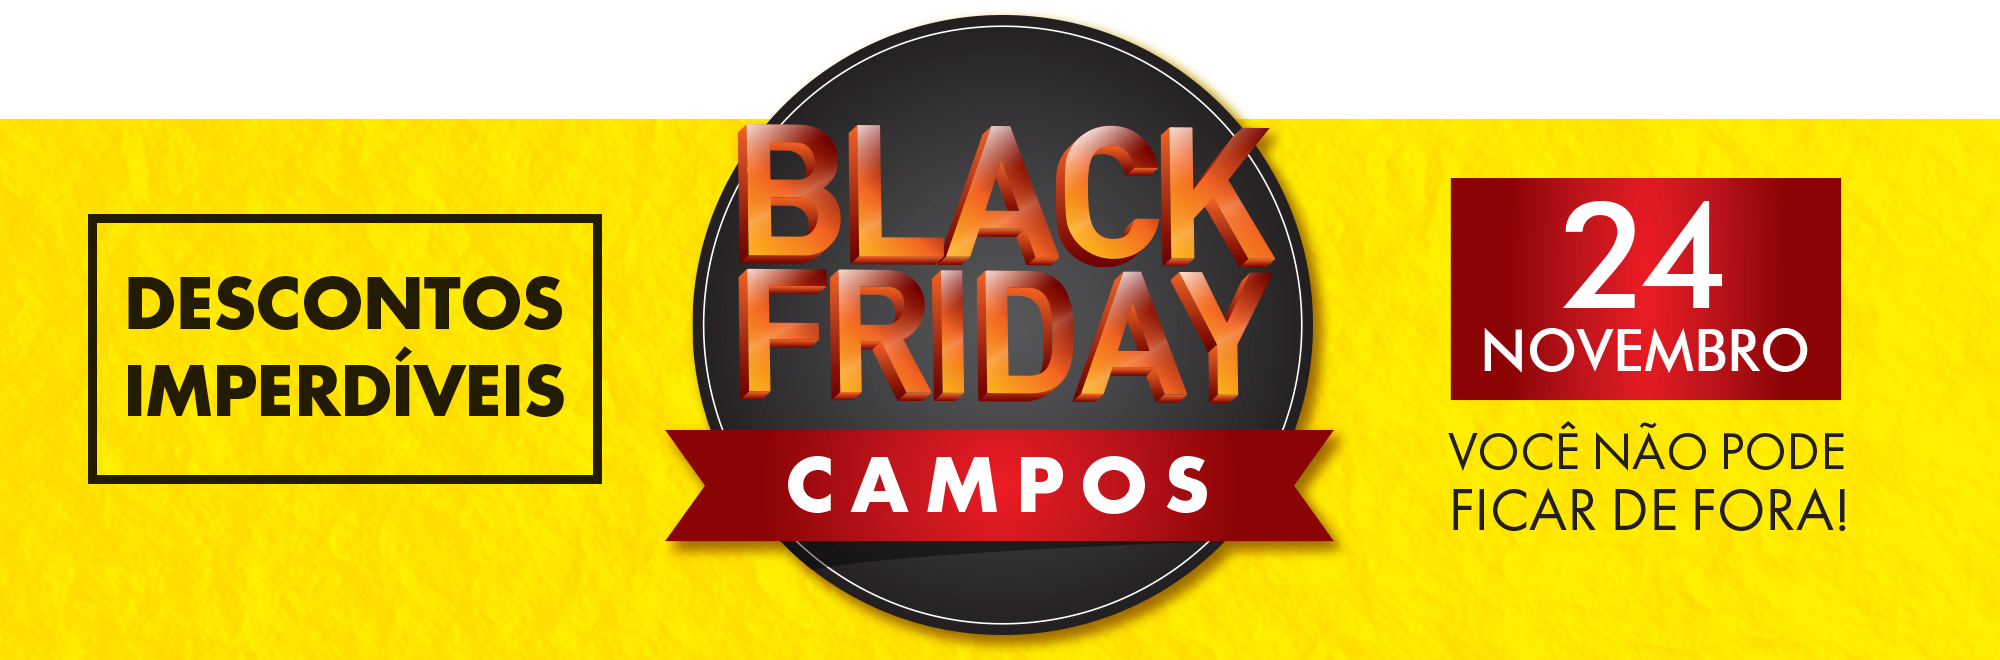 Black Friday Campos 2017